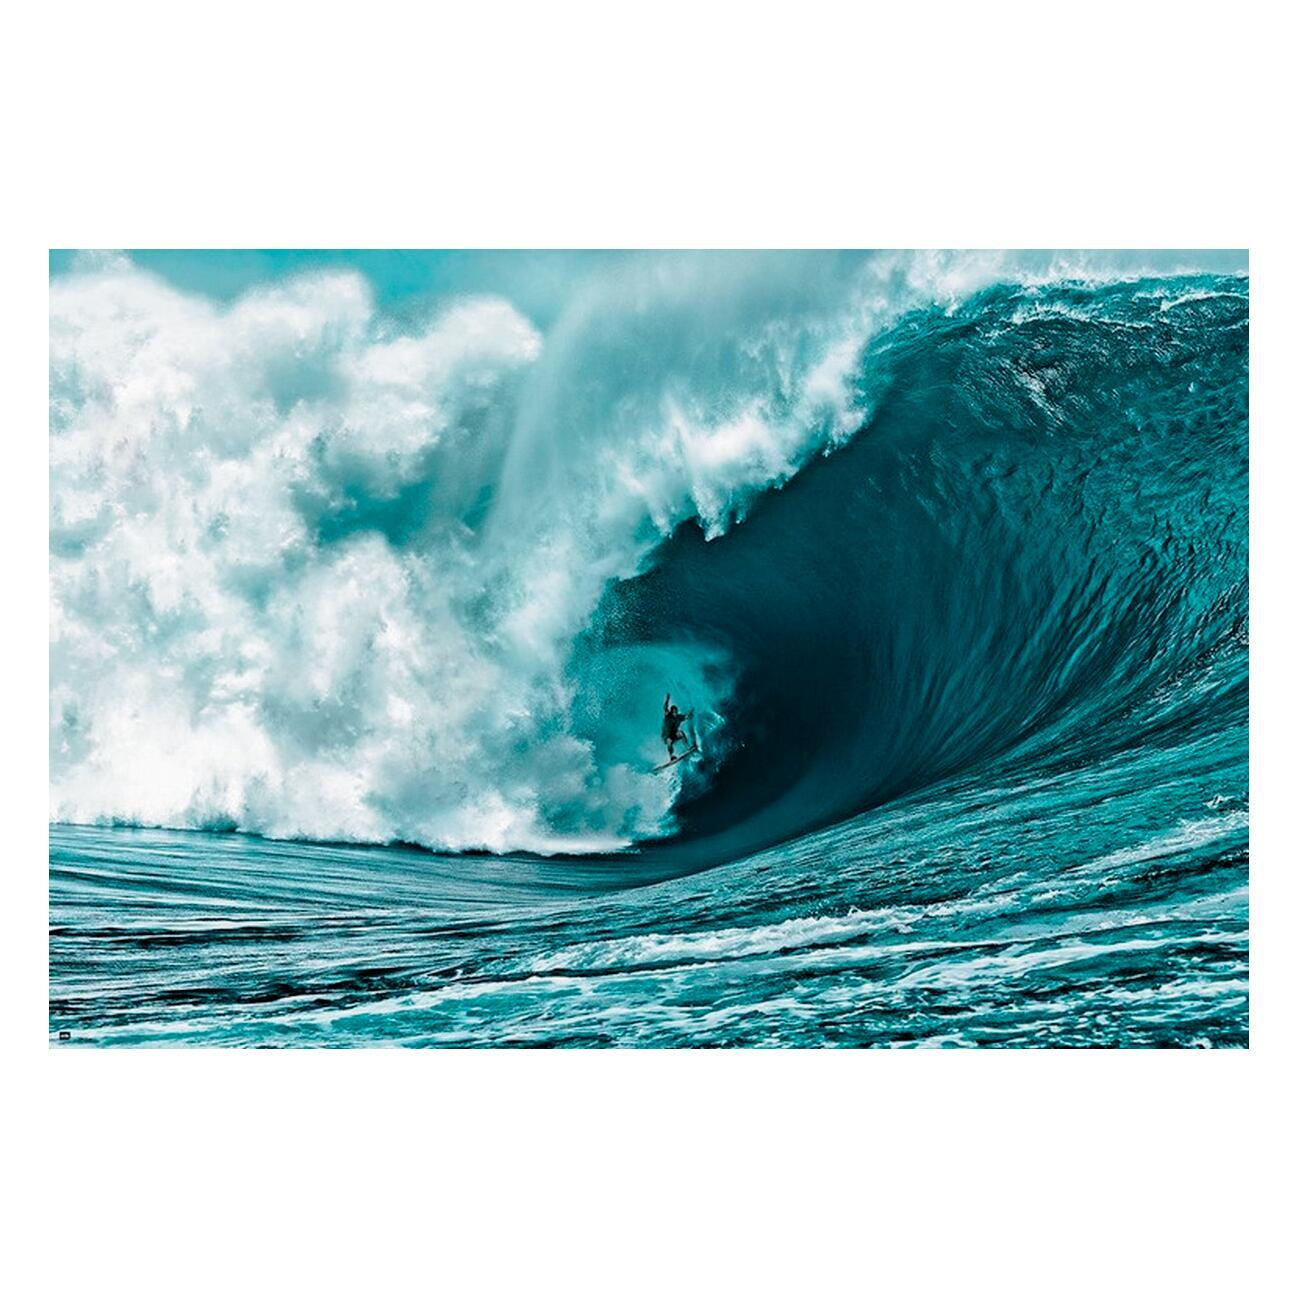 Poster The big wave 91.5x61 cm - 1